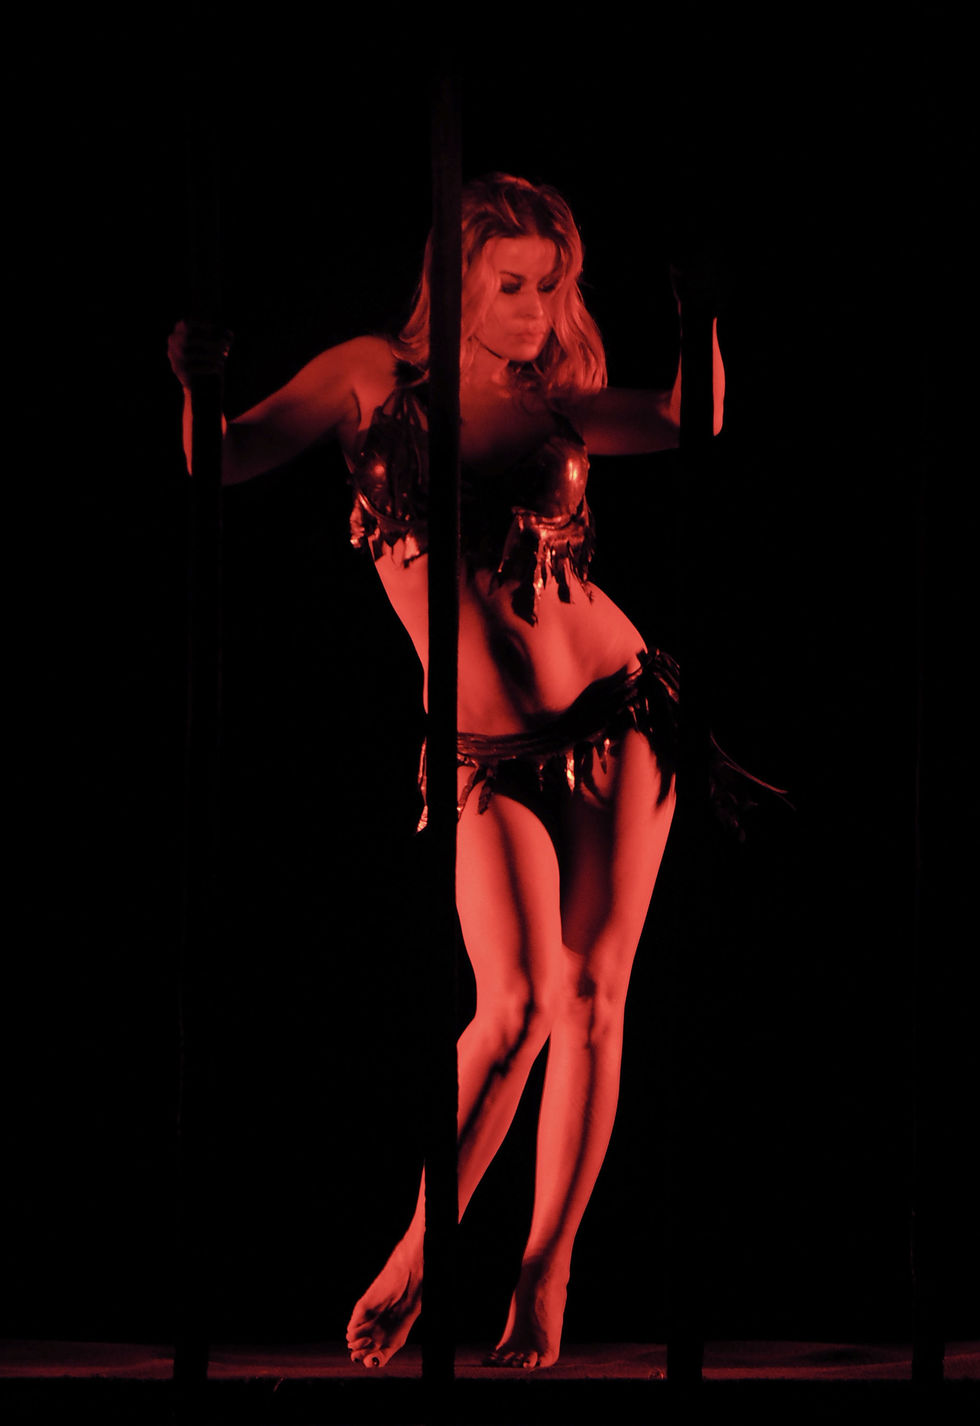 carmen-electra-in-lingerie-performs-in-mgm-grands-crazy-horse-paris-01